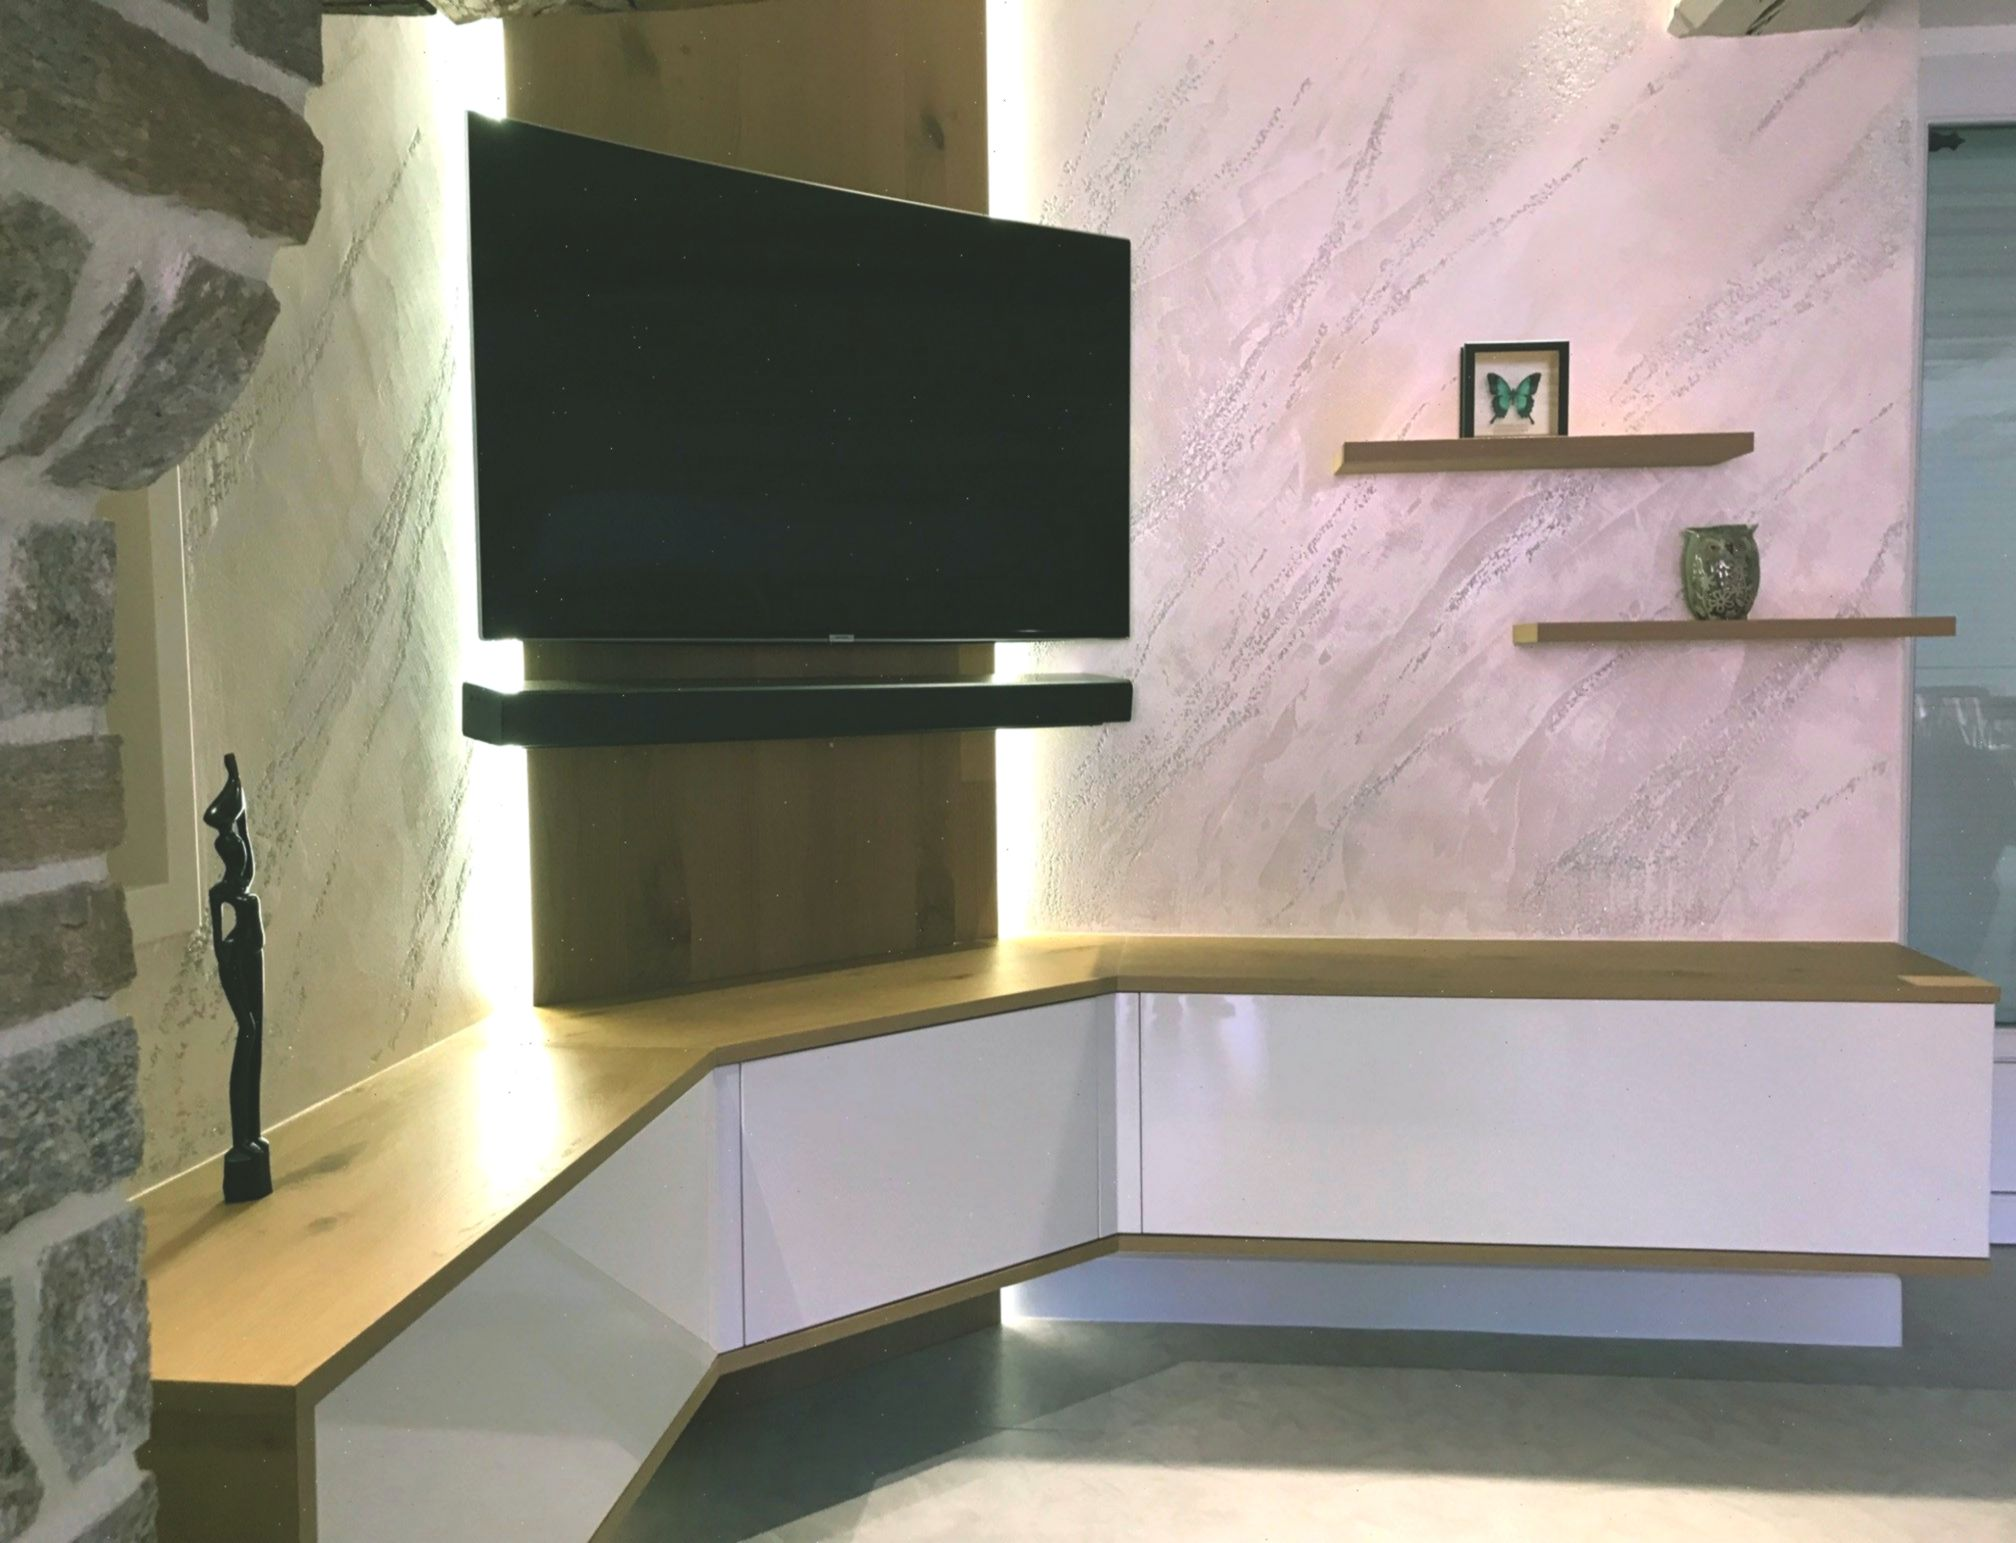 Meuble Tv Suspendu Avec Led A Chateaubriand Angletvcabinet Avec Chateaubriand Homedecor Led Livingroom Meuble Meubletvanglesusp Tv Cabinets Led Cabinet